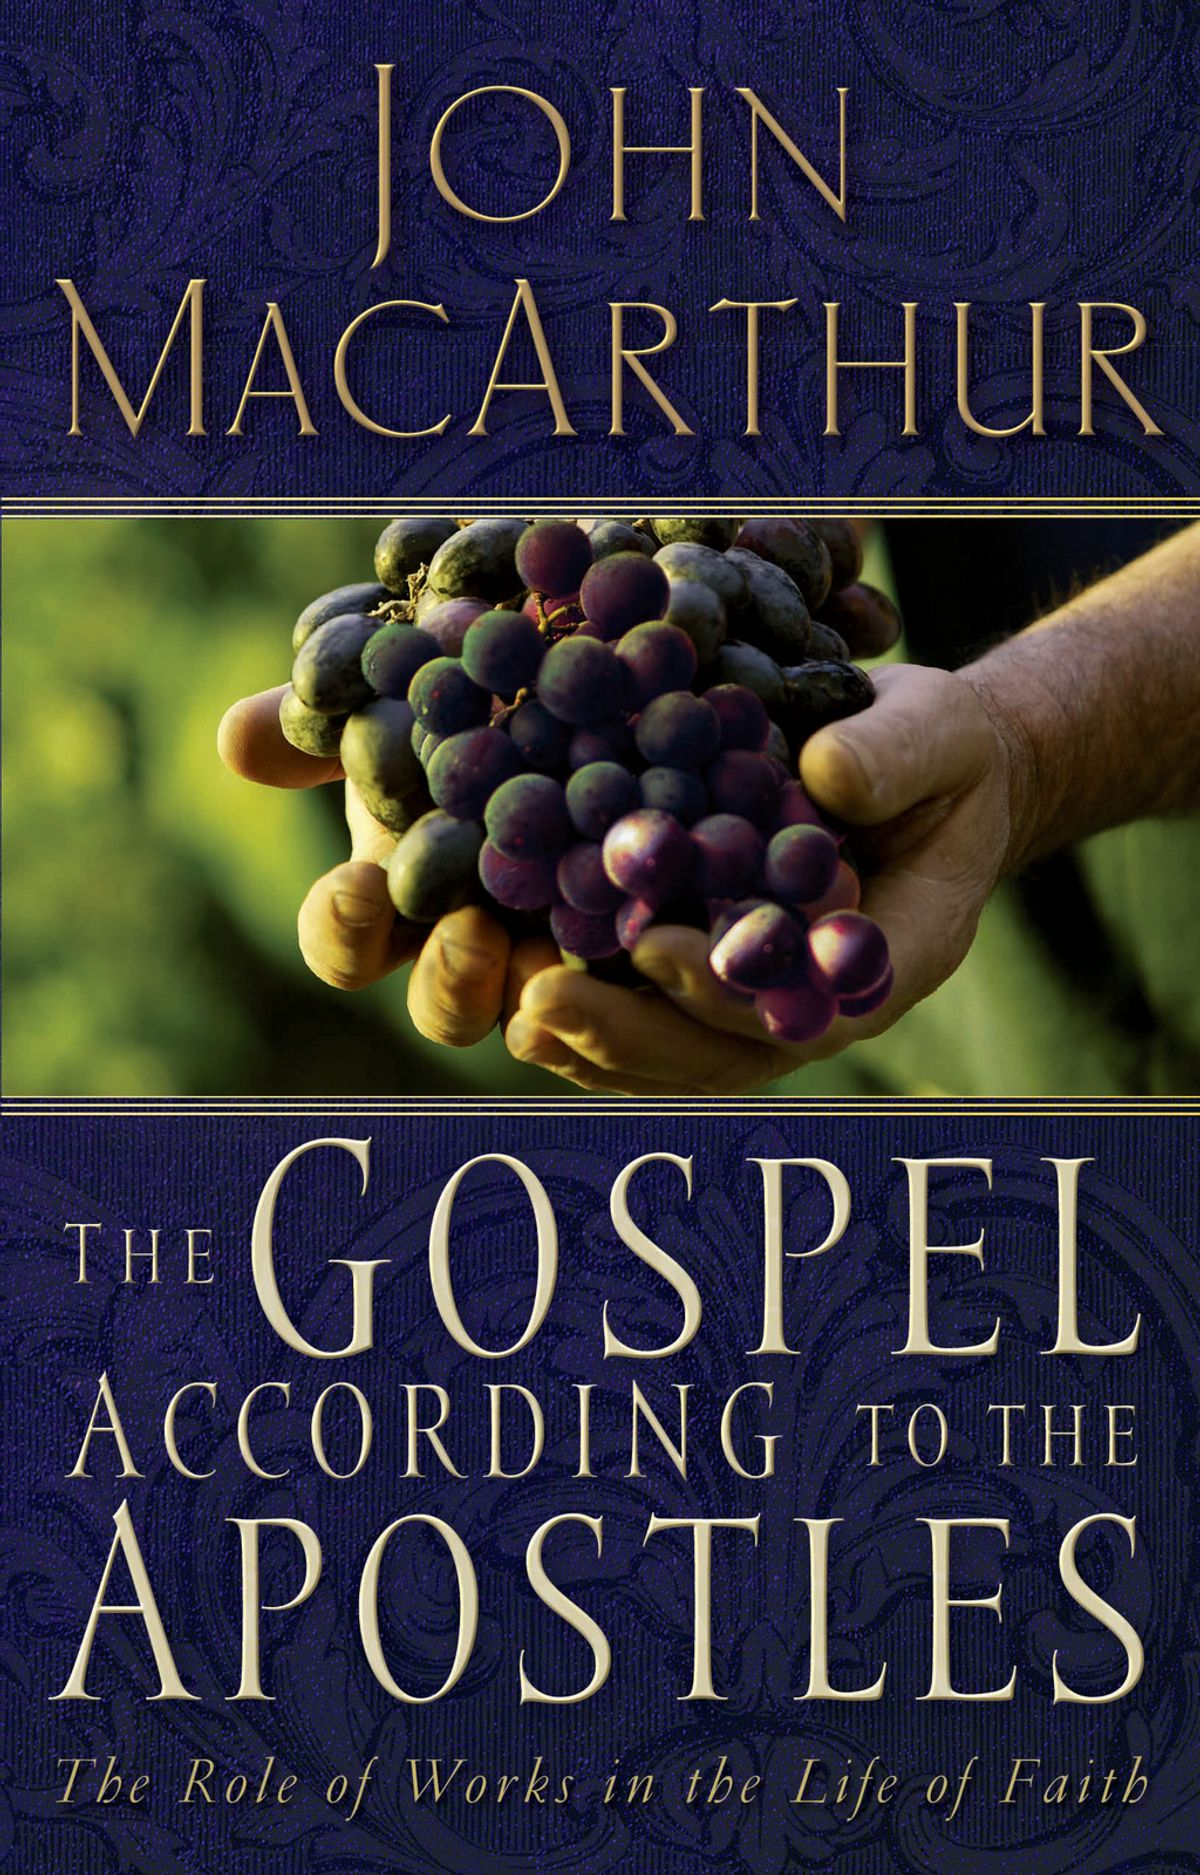 The Gospel According to the Apostles by John F. MacArthur, ISBN: 9781418508098